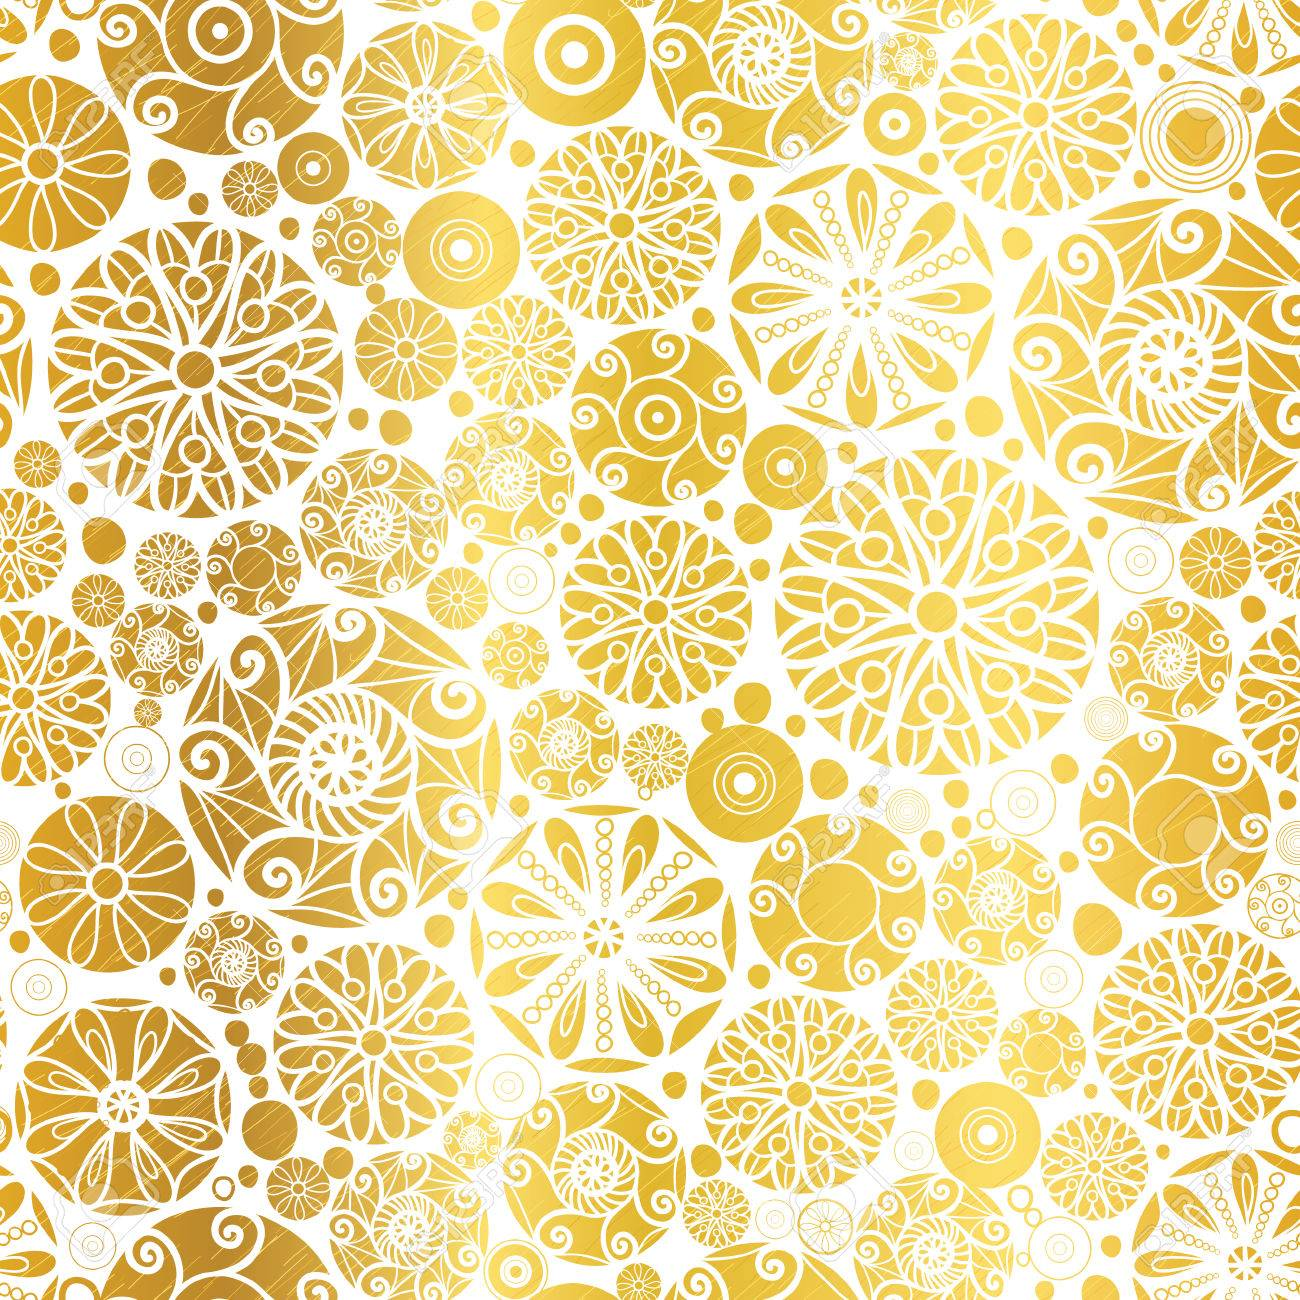 Vector Golden Abstract Doodle Circles Seamless Pattern Background